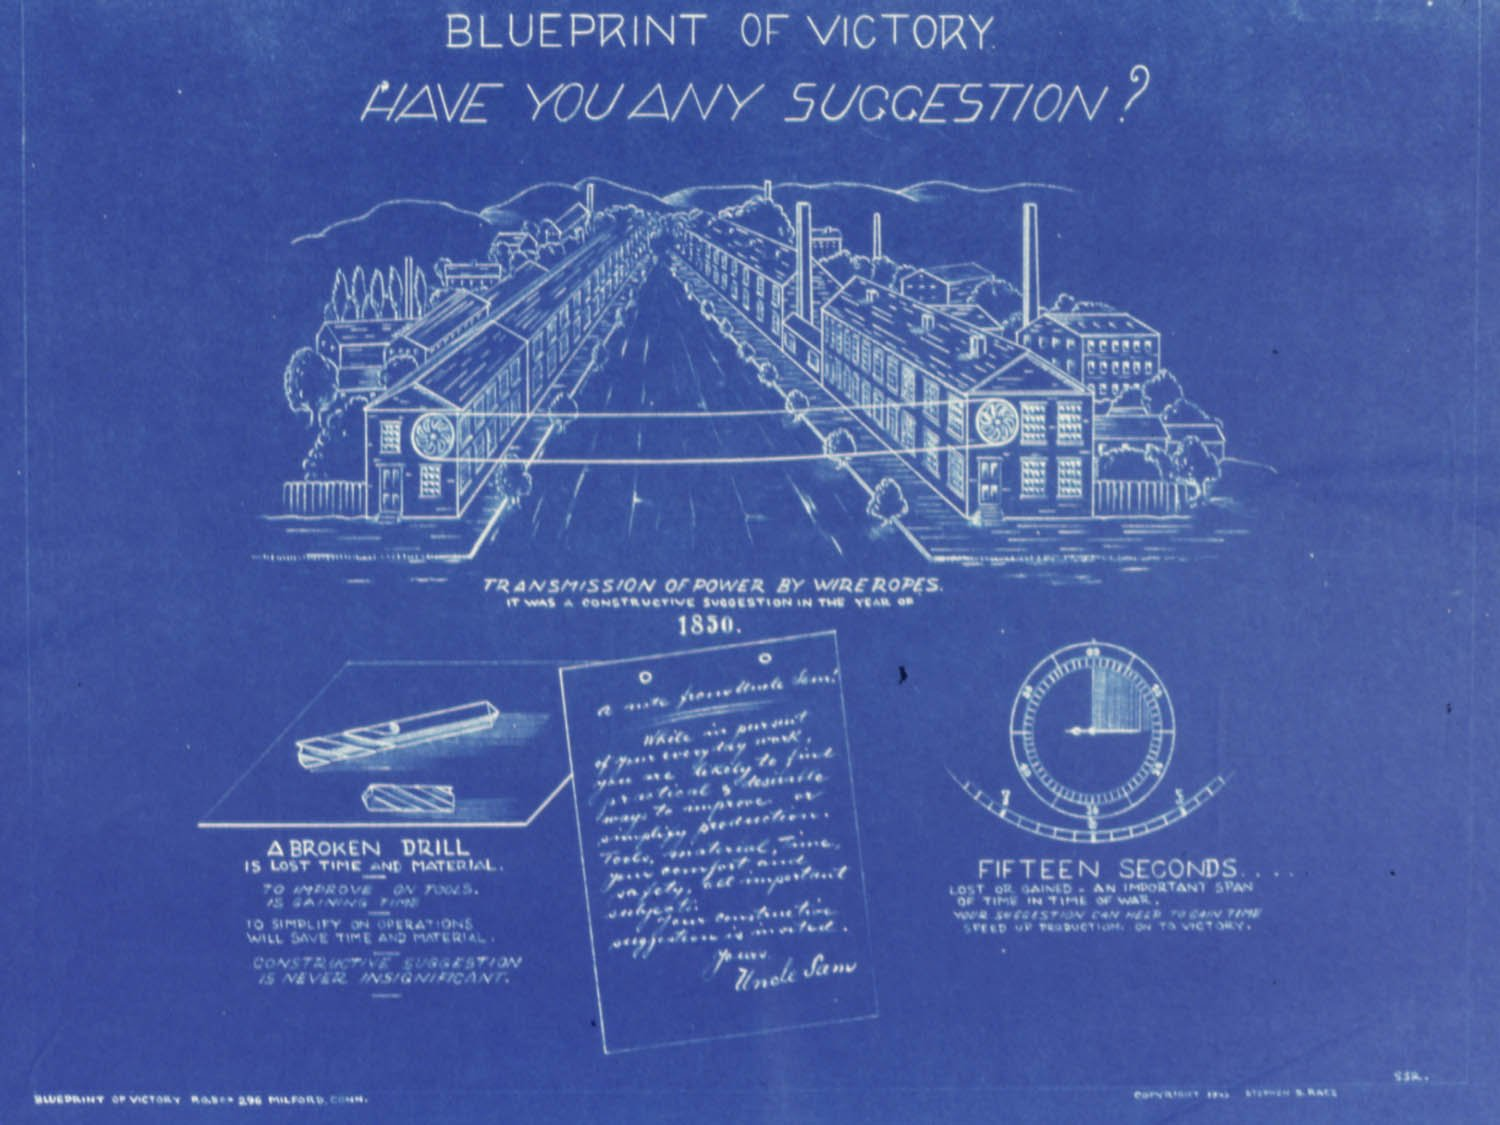 World War Ii Poster Blueprint Of Victory Have You Any Wiring Schematic Suggestions 534552 11 X 17 Posters Prints